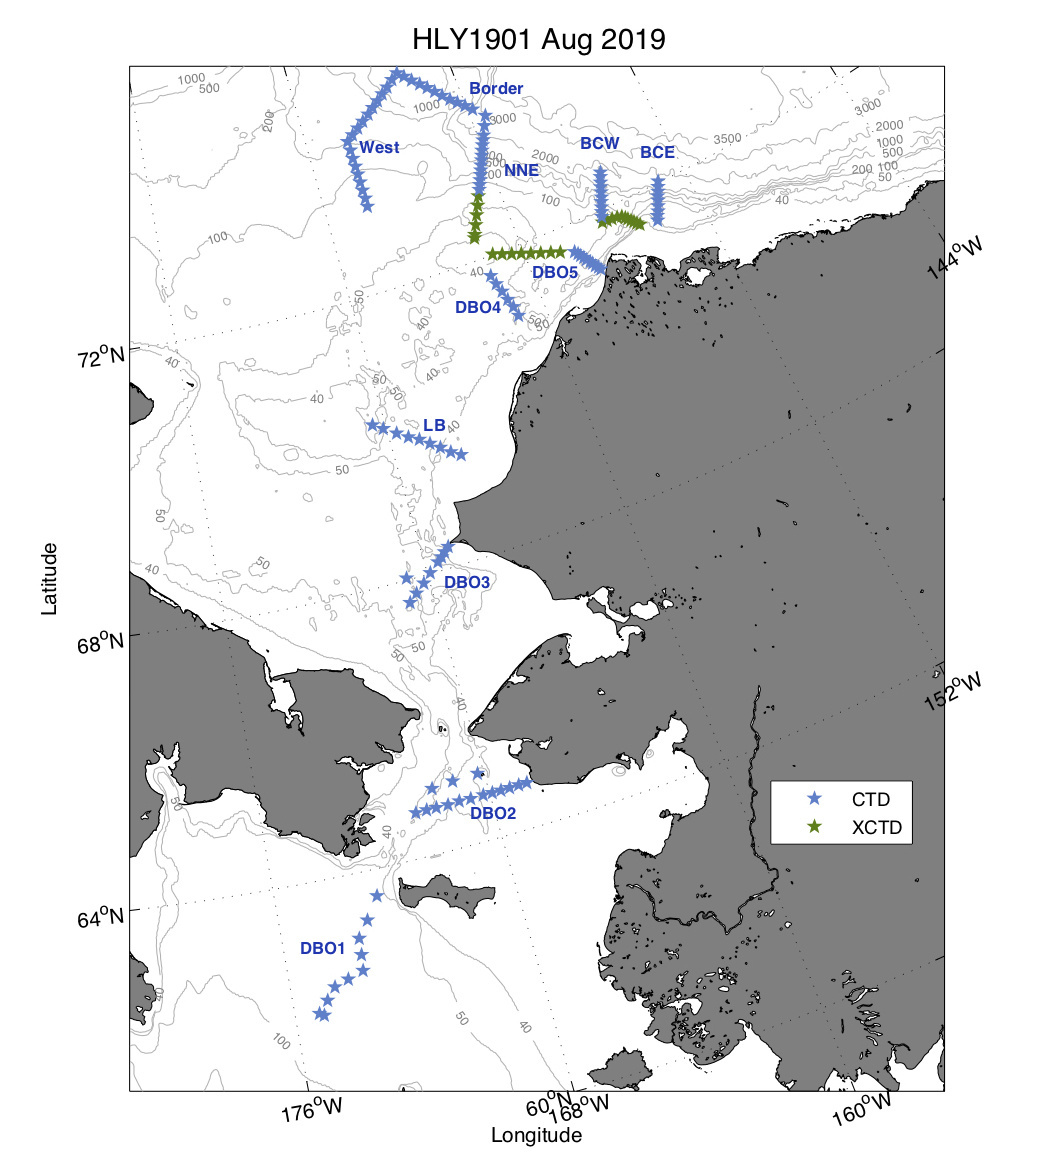 HLY1901 Aug 2019 (map of CTD and XCTD survey locations in the Bering Sea, Chukchi Sea and Beaufort Sea).